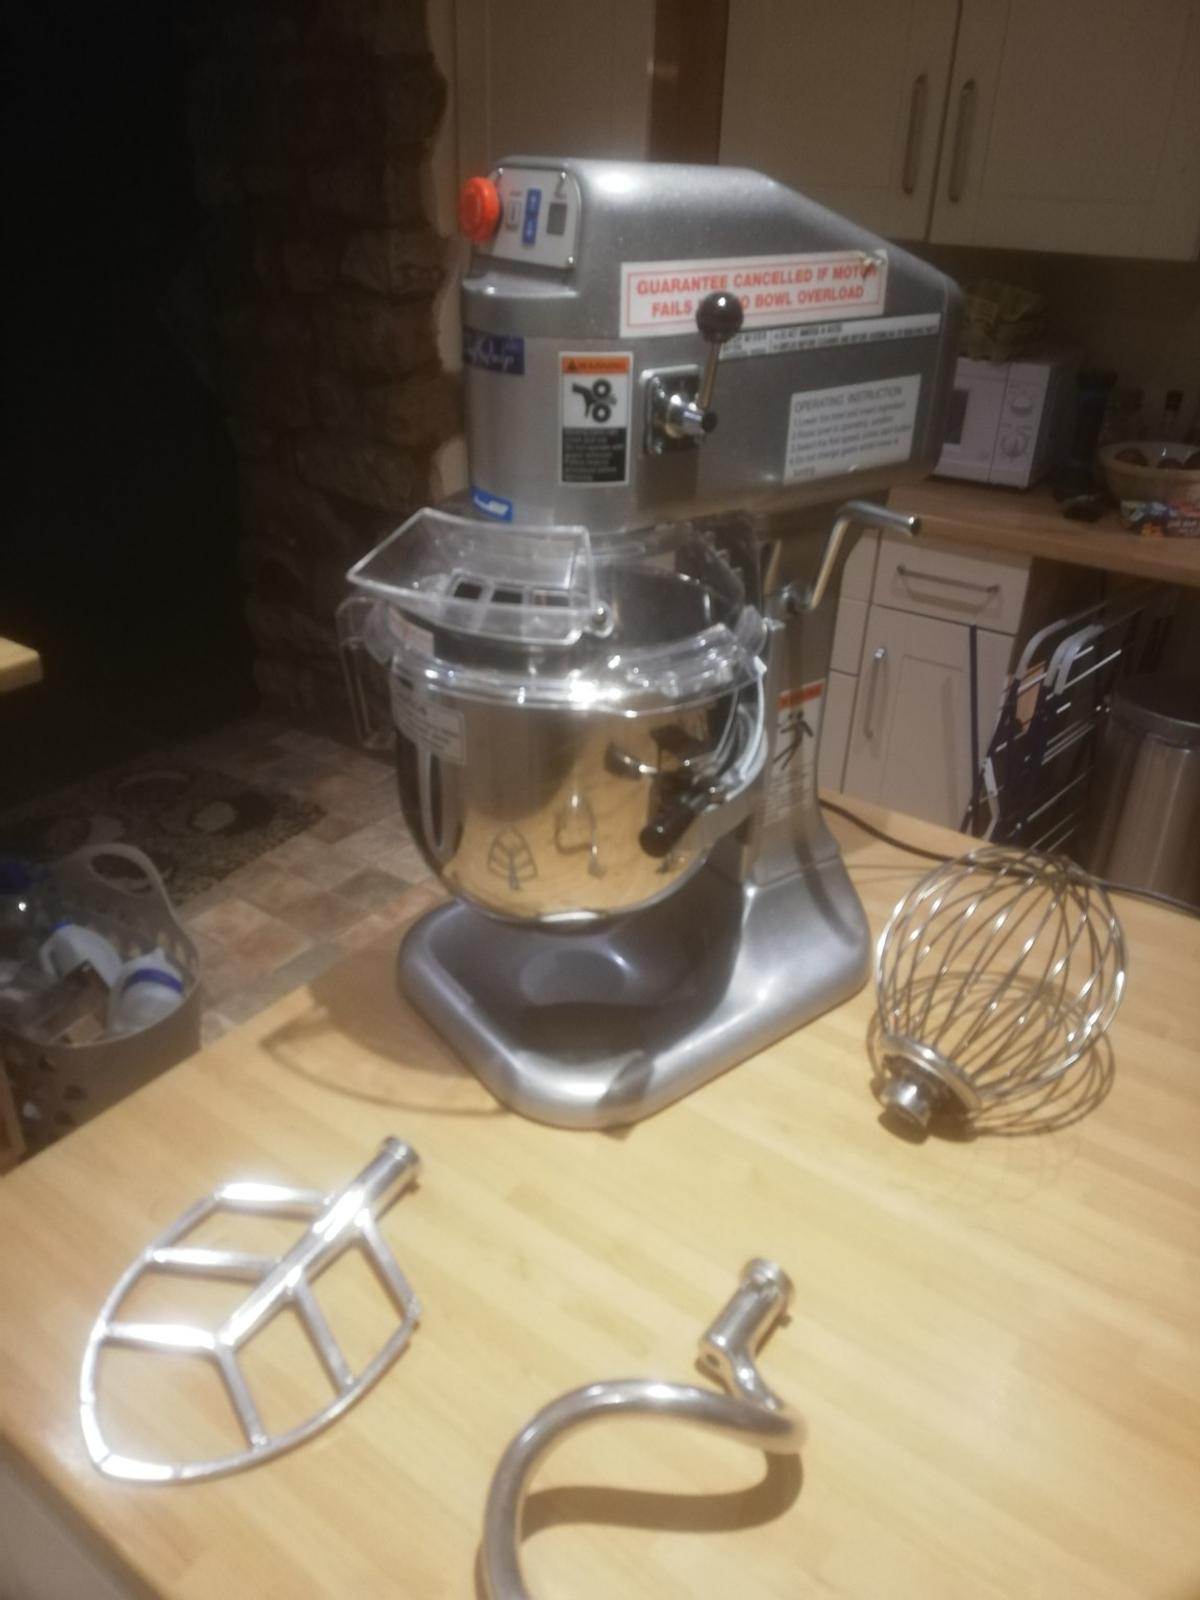 like new, rarely used would suit business use  Specification/Features include:  0.25hp Motor.  Variable Speeds 132/235/421.  Interlocking bowl guard and bowl lift.  Emergency stop button.  No volt release.  15 Minute timer.  Supplied with Bowl, Beater, Whisk and Spiral Dough Hook.  Dimensions D x W x H 40 x 30 x 58 cm.  Weight 29 Kg.  230V/0.2kW Single Phase.  13 amp plug fitted.  Accessories:  SP 800BL 7.5 Litre Bowl.  SP-800WH Whisk.  SP- 800FB Beater.  SP-800 HK  Spiral Dough Hook.